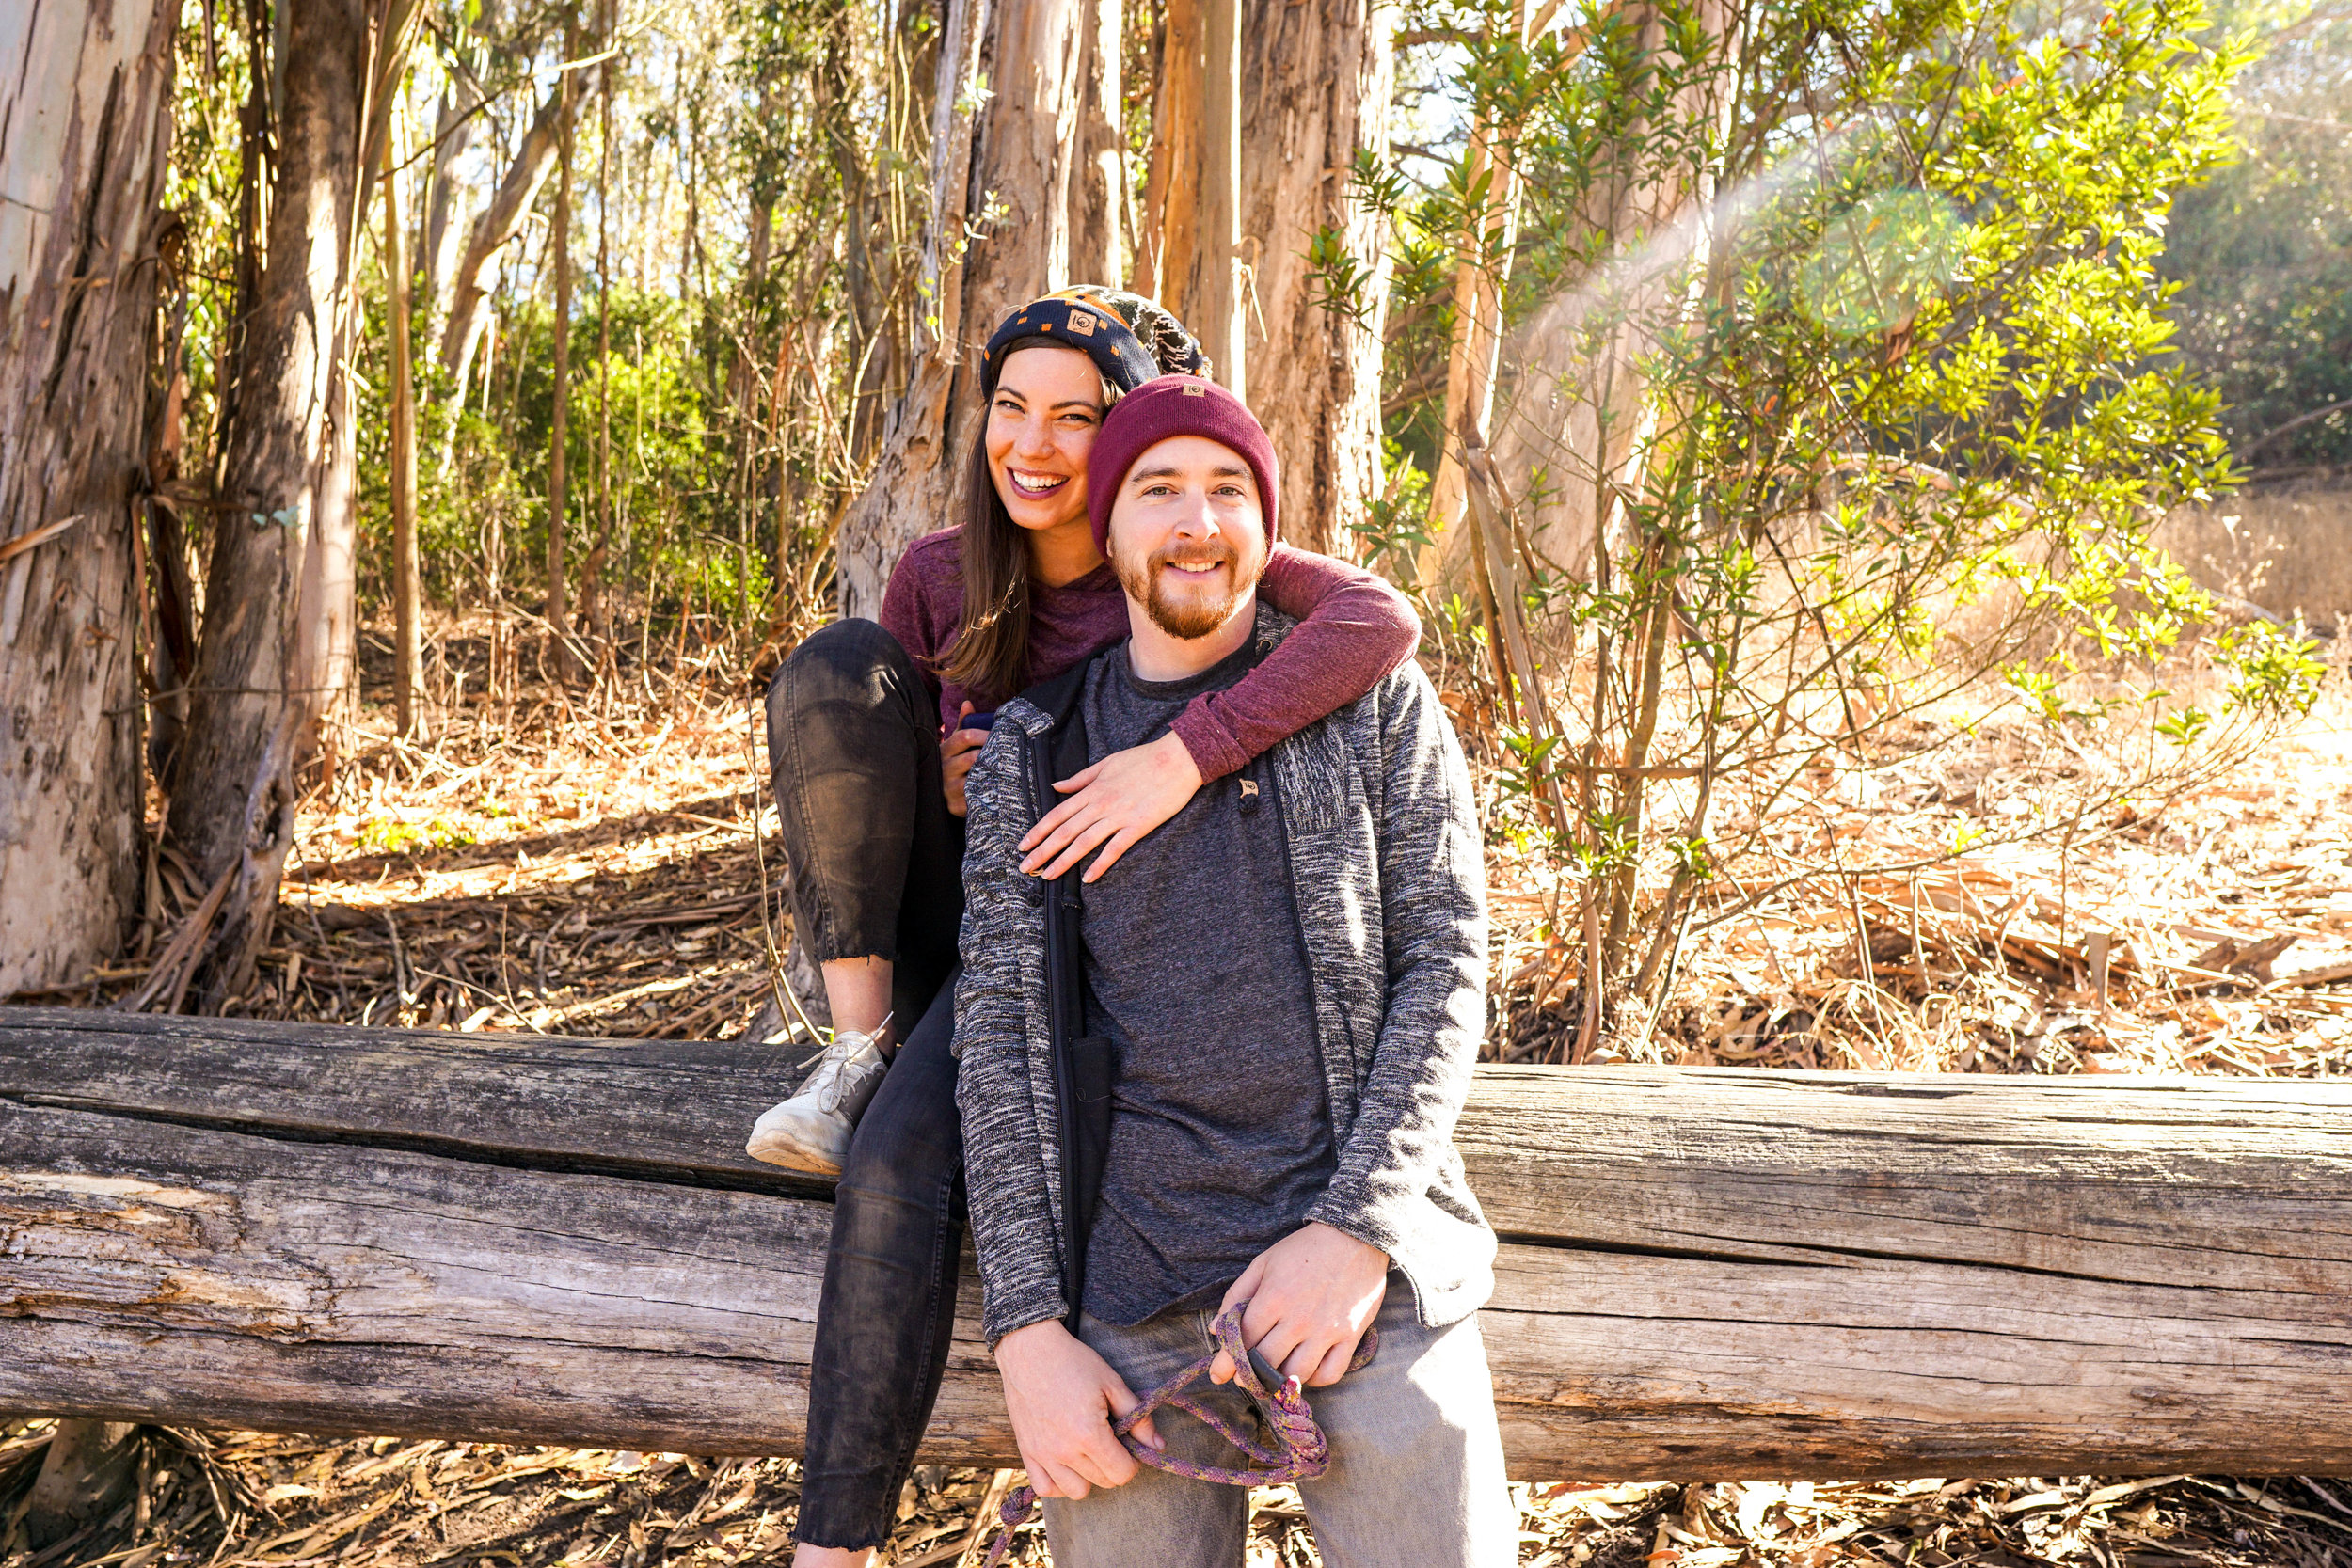 Five fall hiking essentials from www.goingzerowaste.com #hiking #fall #sustainableclothing